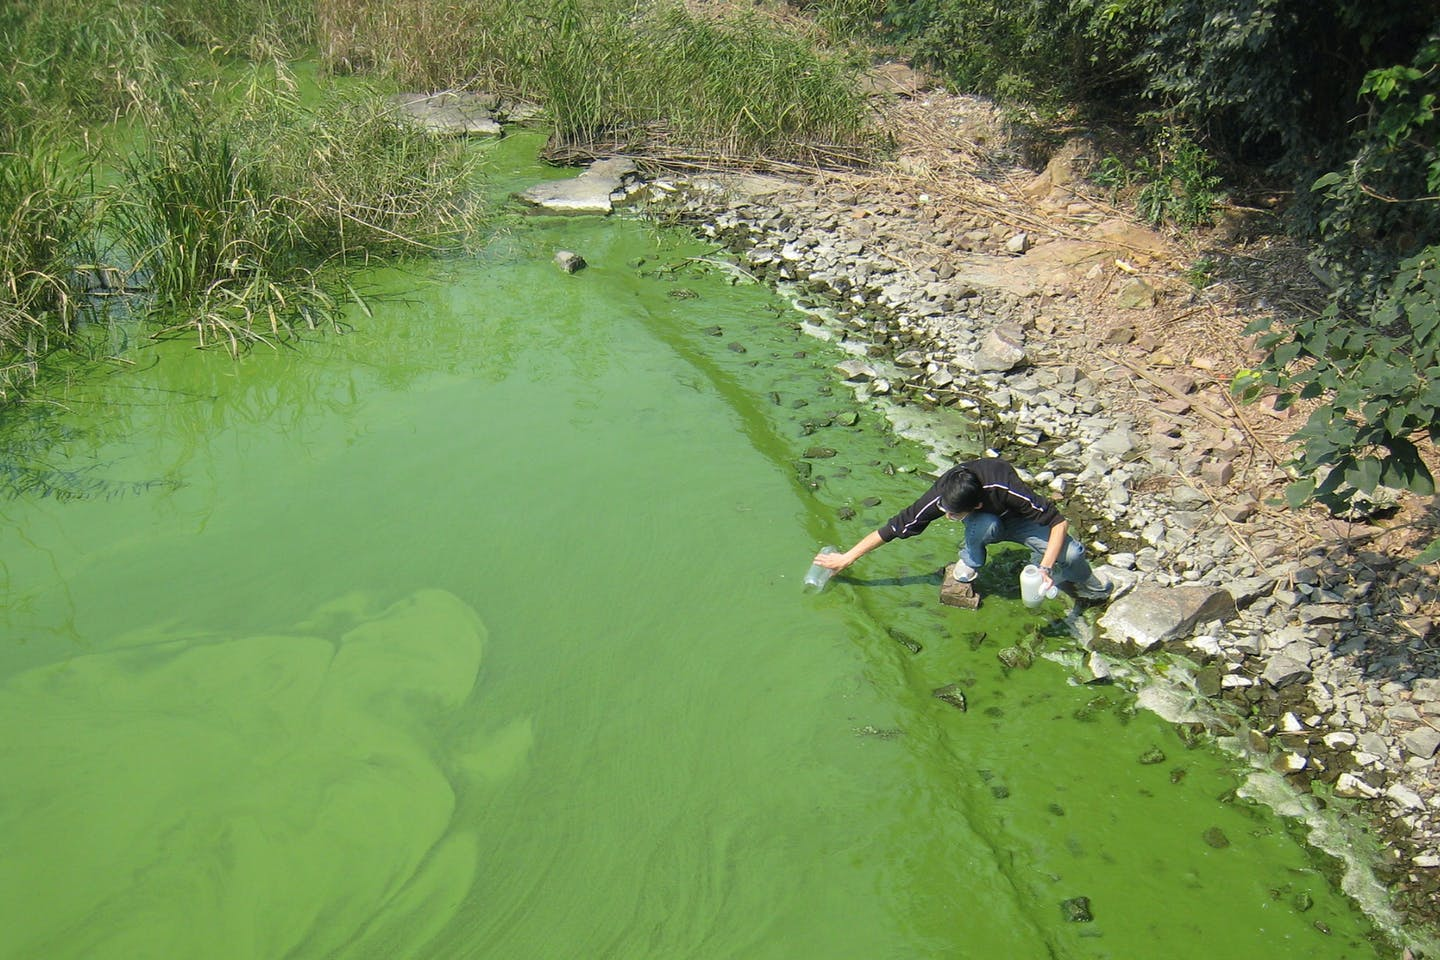 Researcher collects slimy green sample of algal bloom in Lake Taihu, China